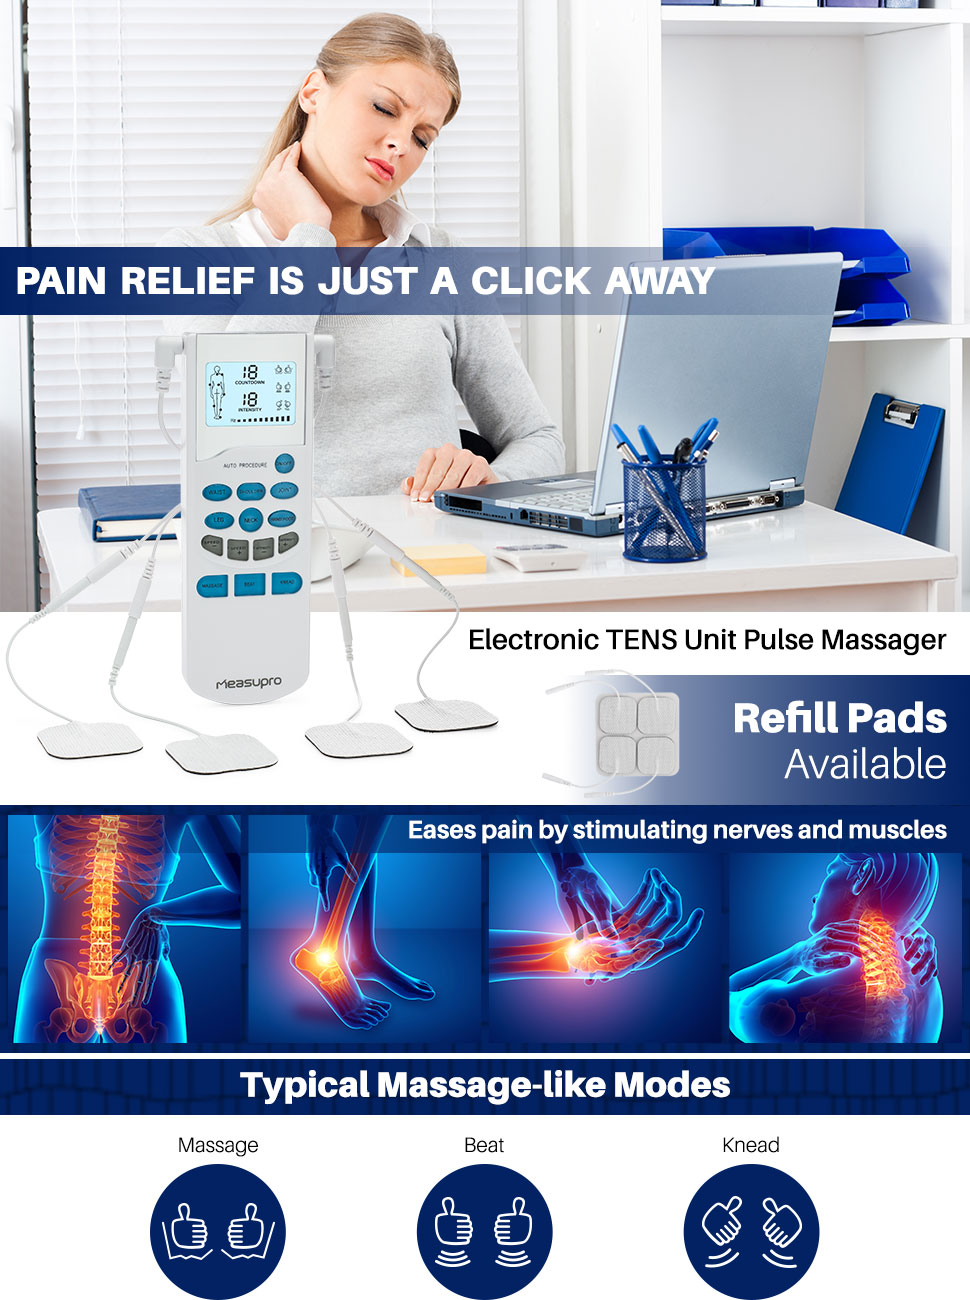 amazon com measupro portable tens unit machine electro therapy